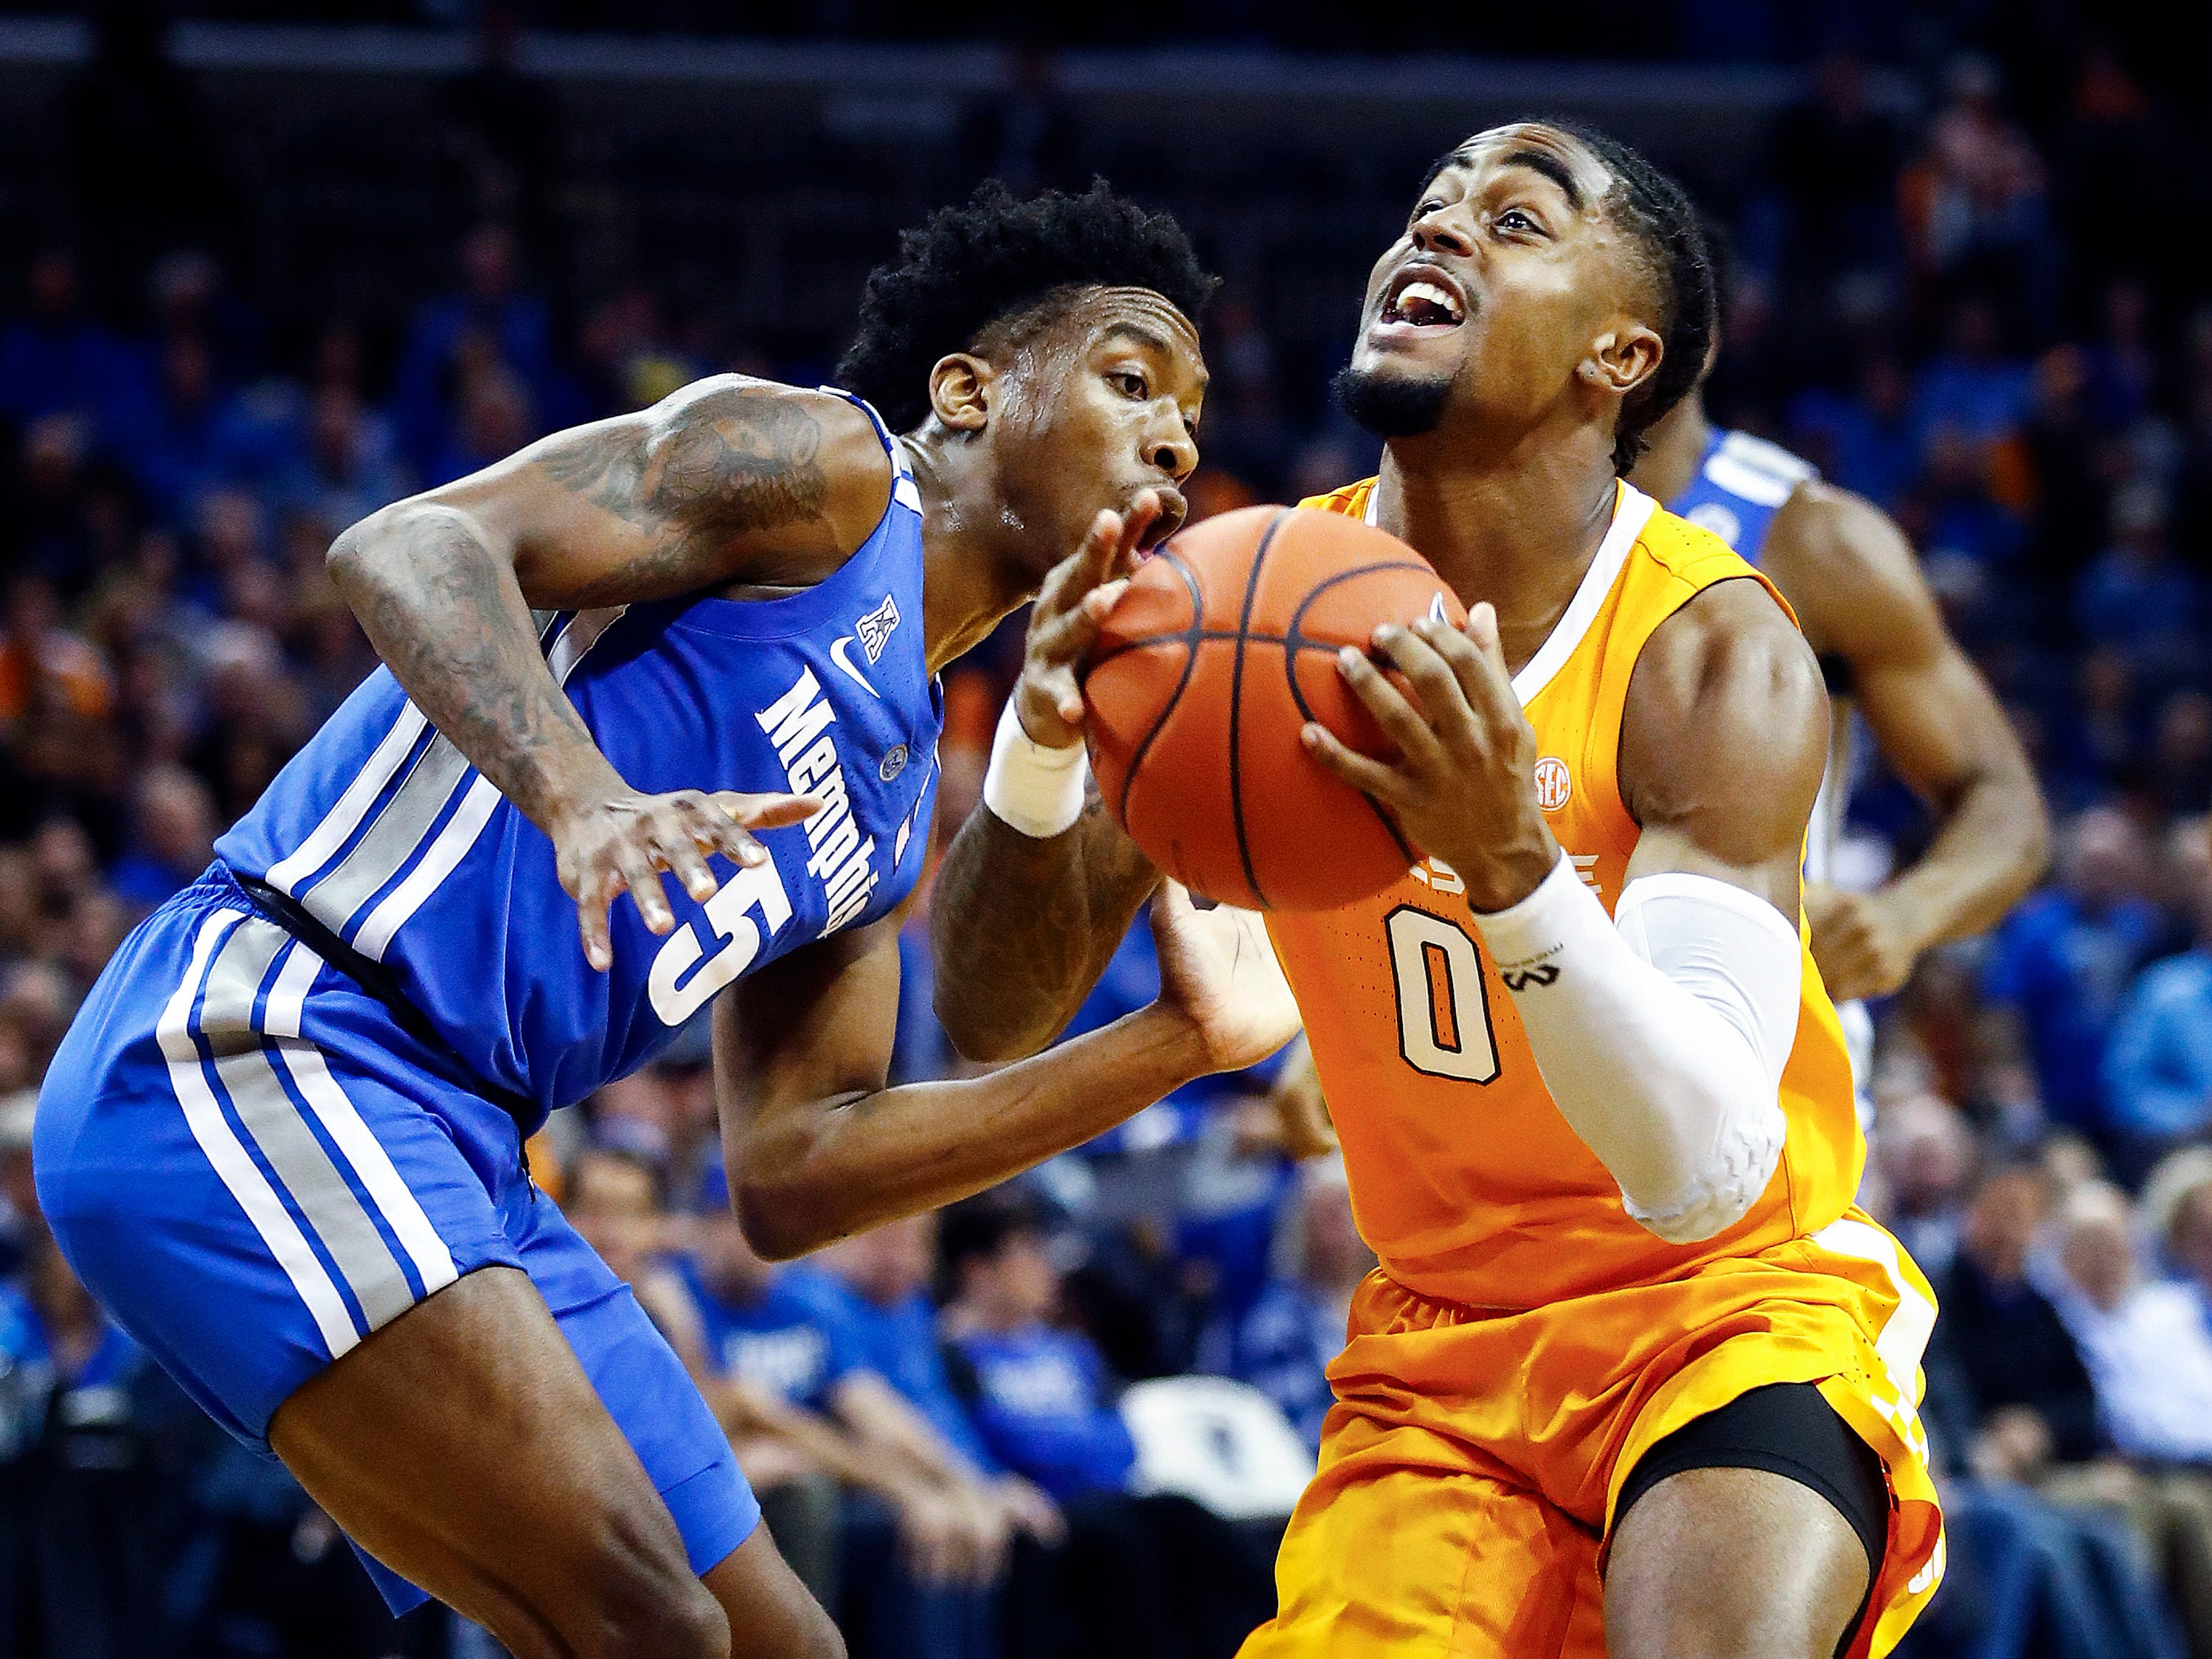 Tennessee guard Jordan Bone (right) drives by Memphis defender Kareem Brewton Jr. (left) during action at the FedExForum, Saturday, December 15, 2018.